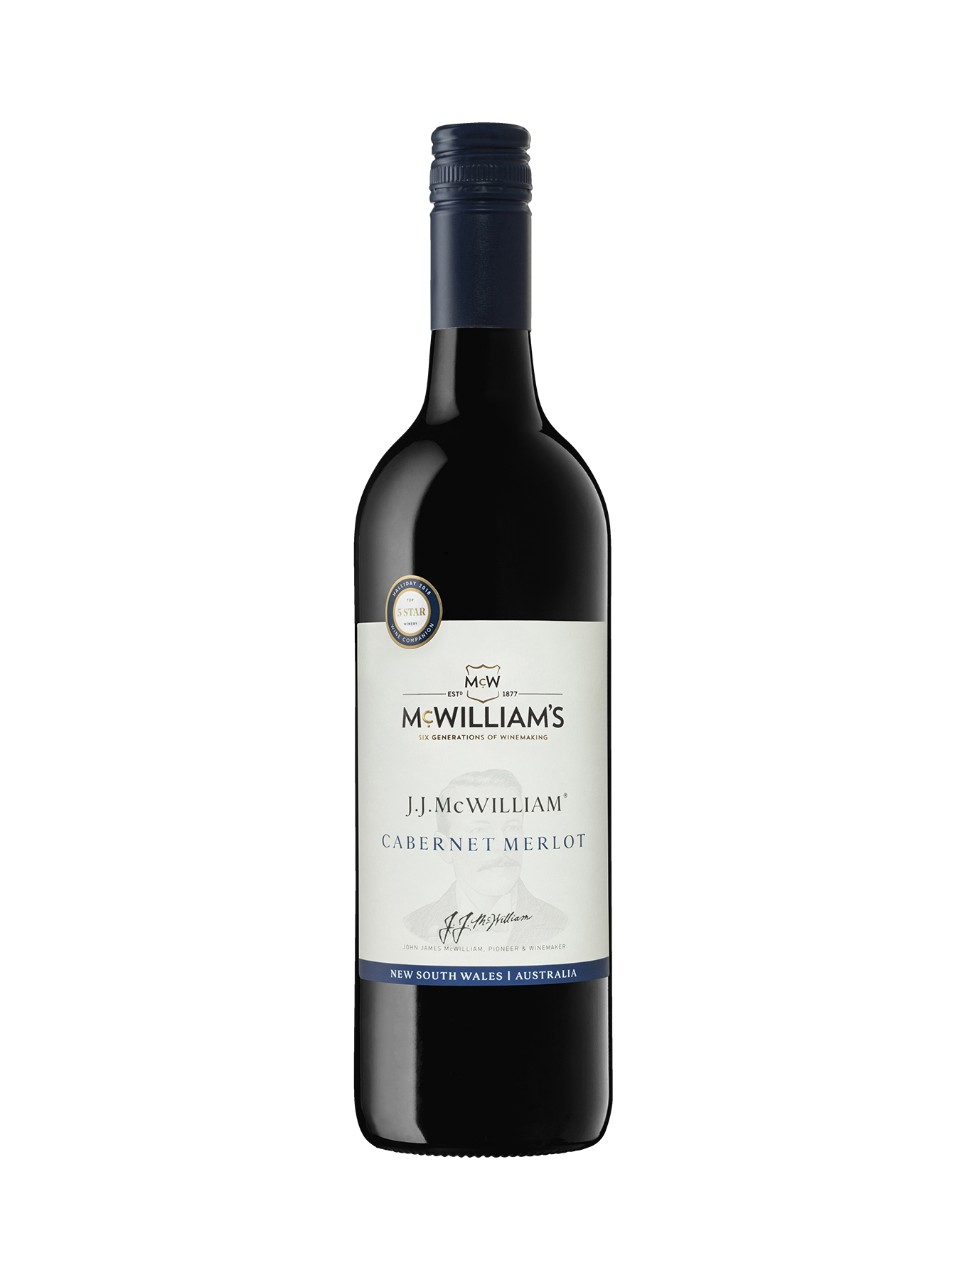 JJ McWilliam Cabernet Merlot from LCBO